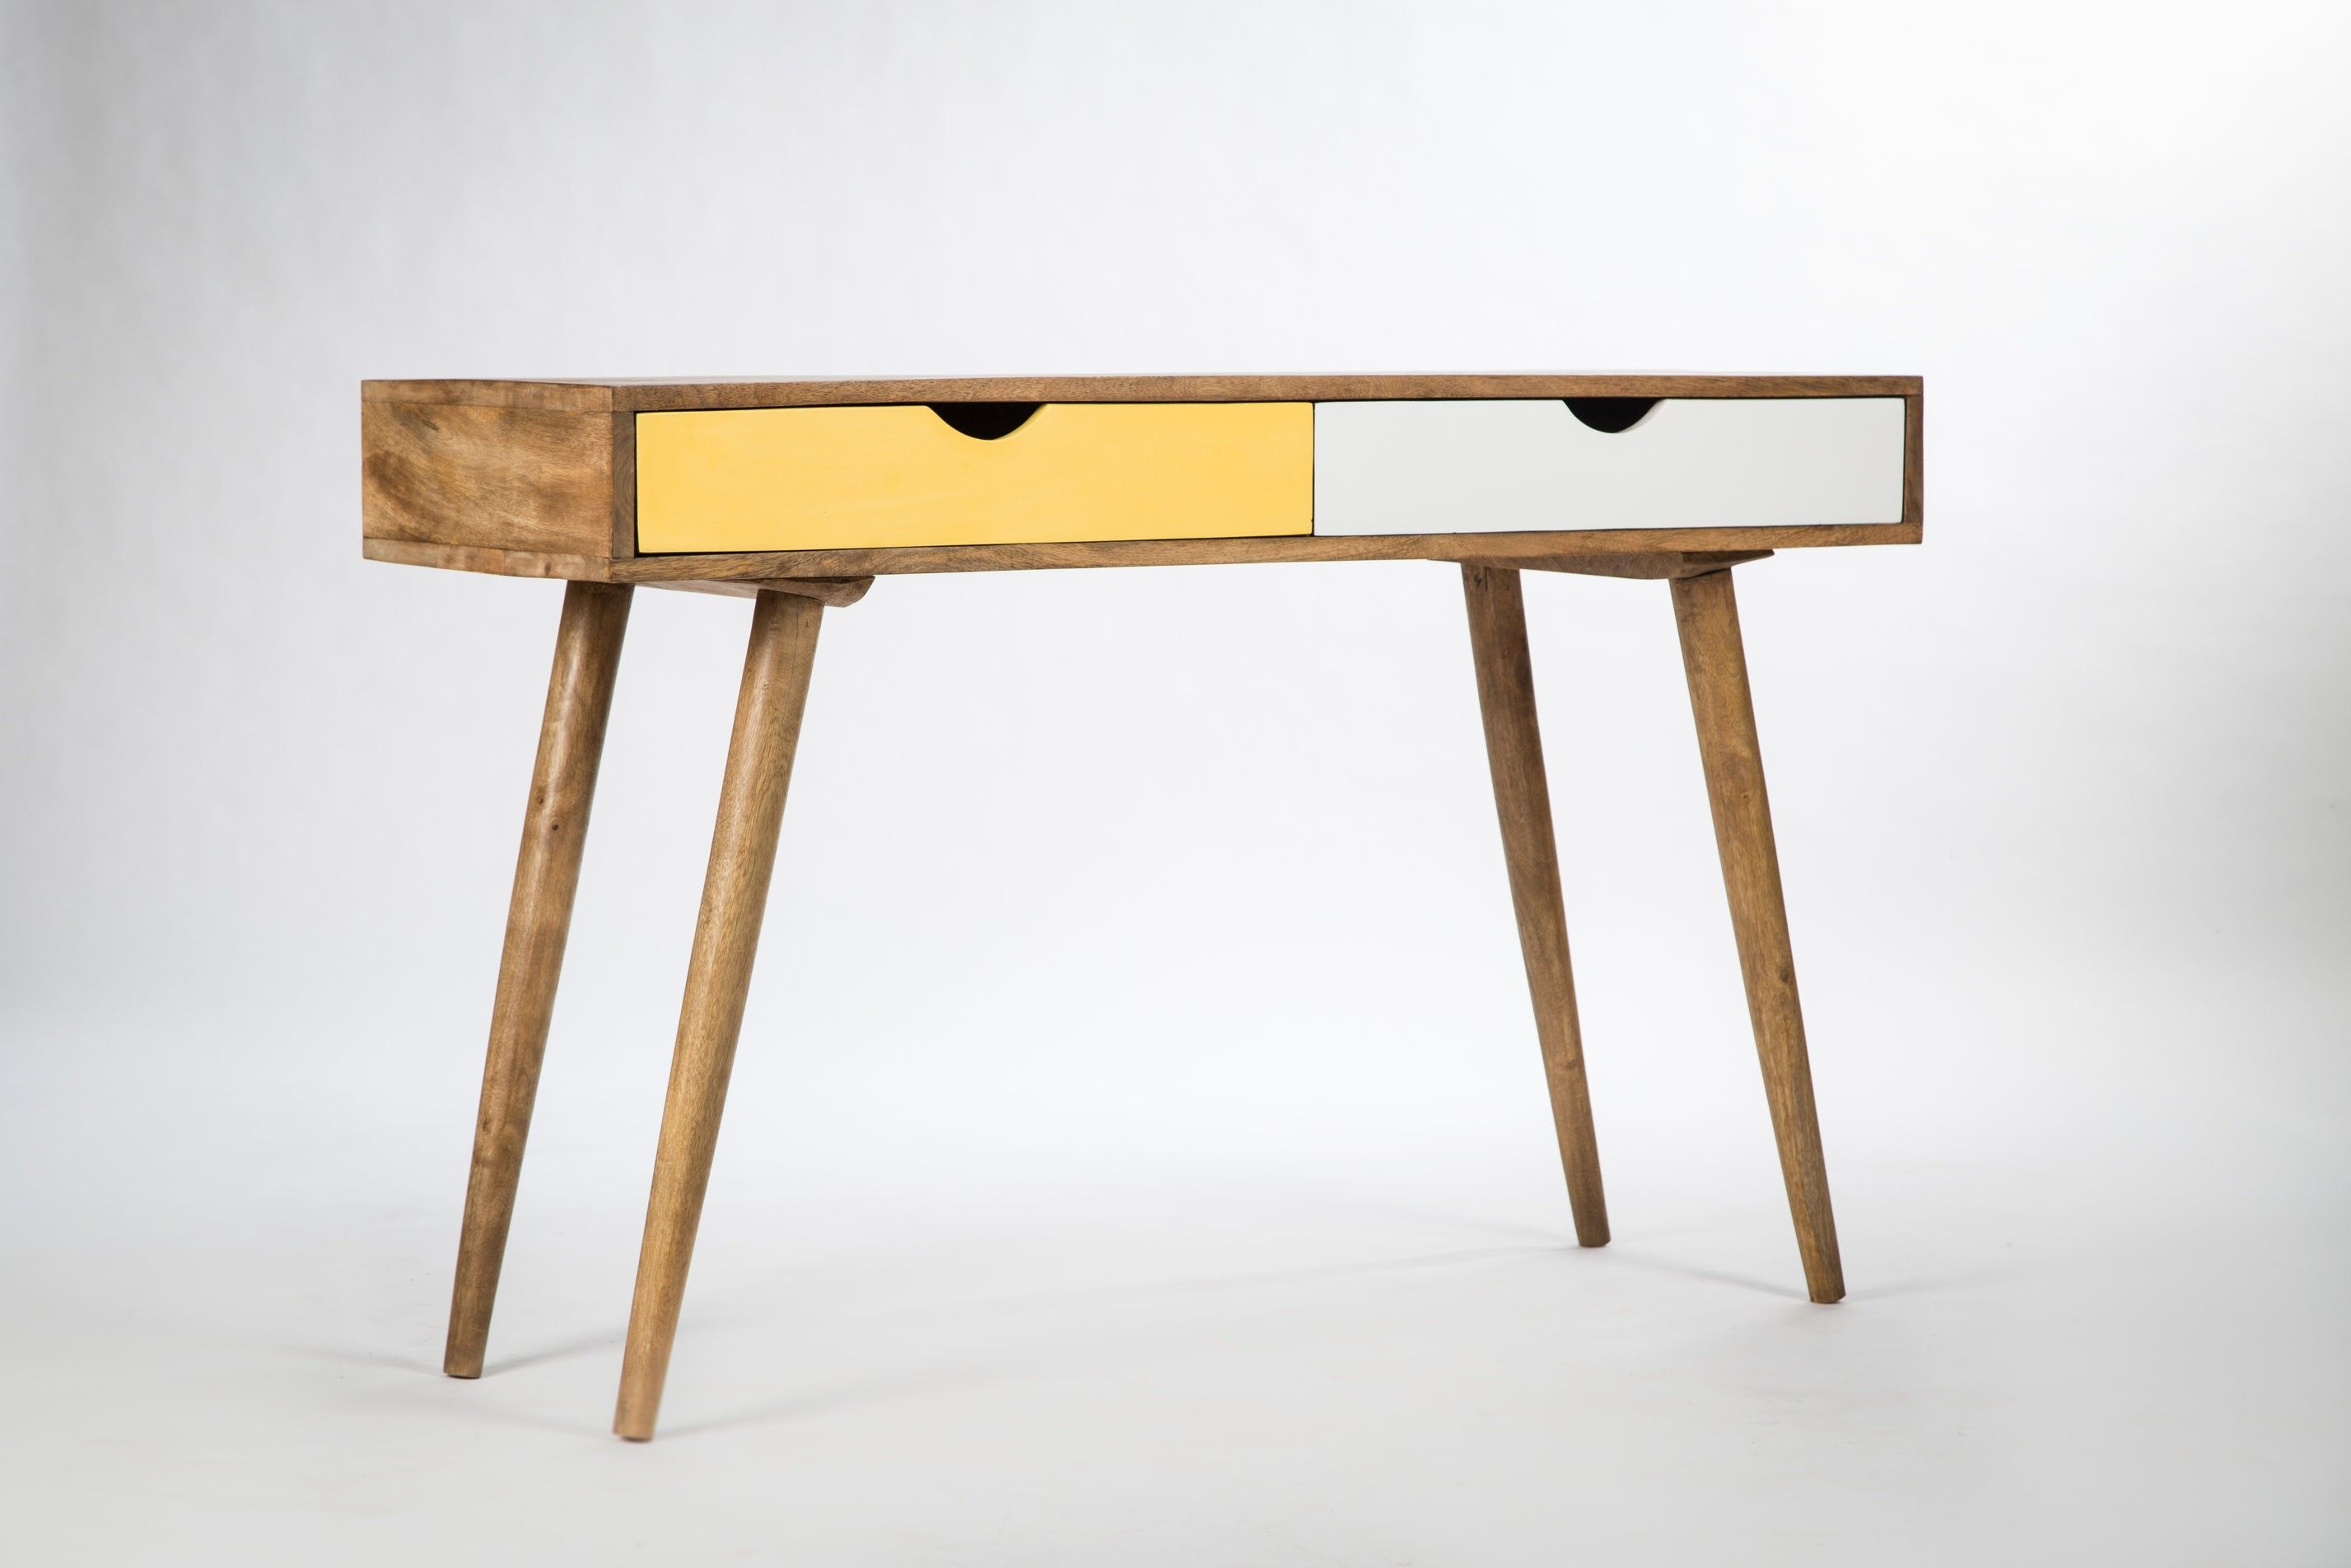 Bureau table design bois scandinave g  study room